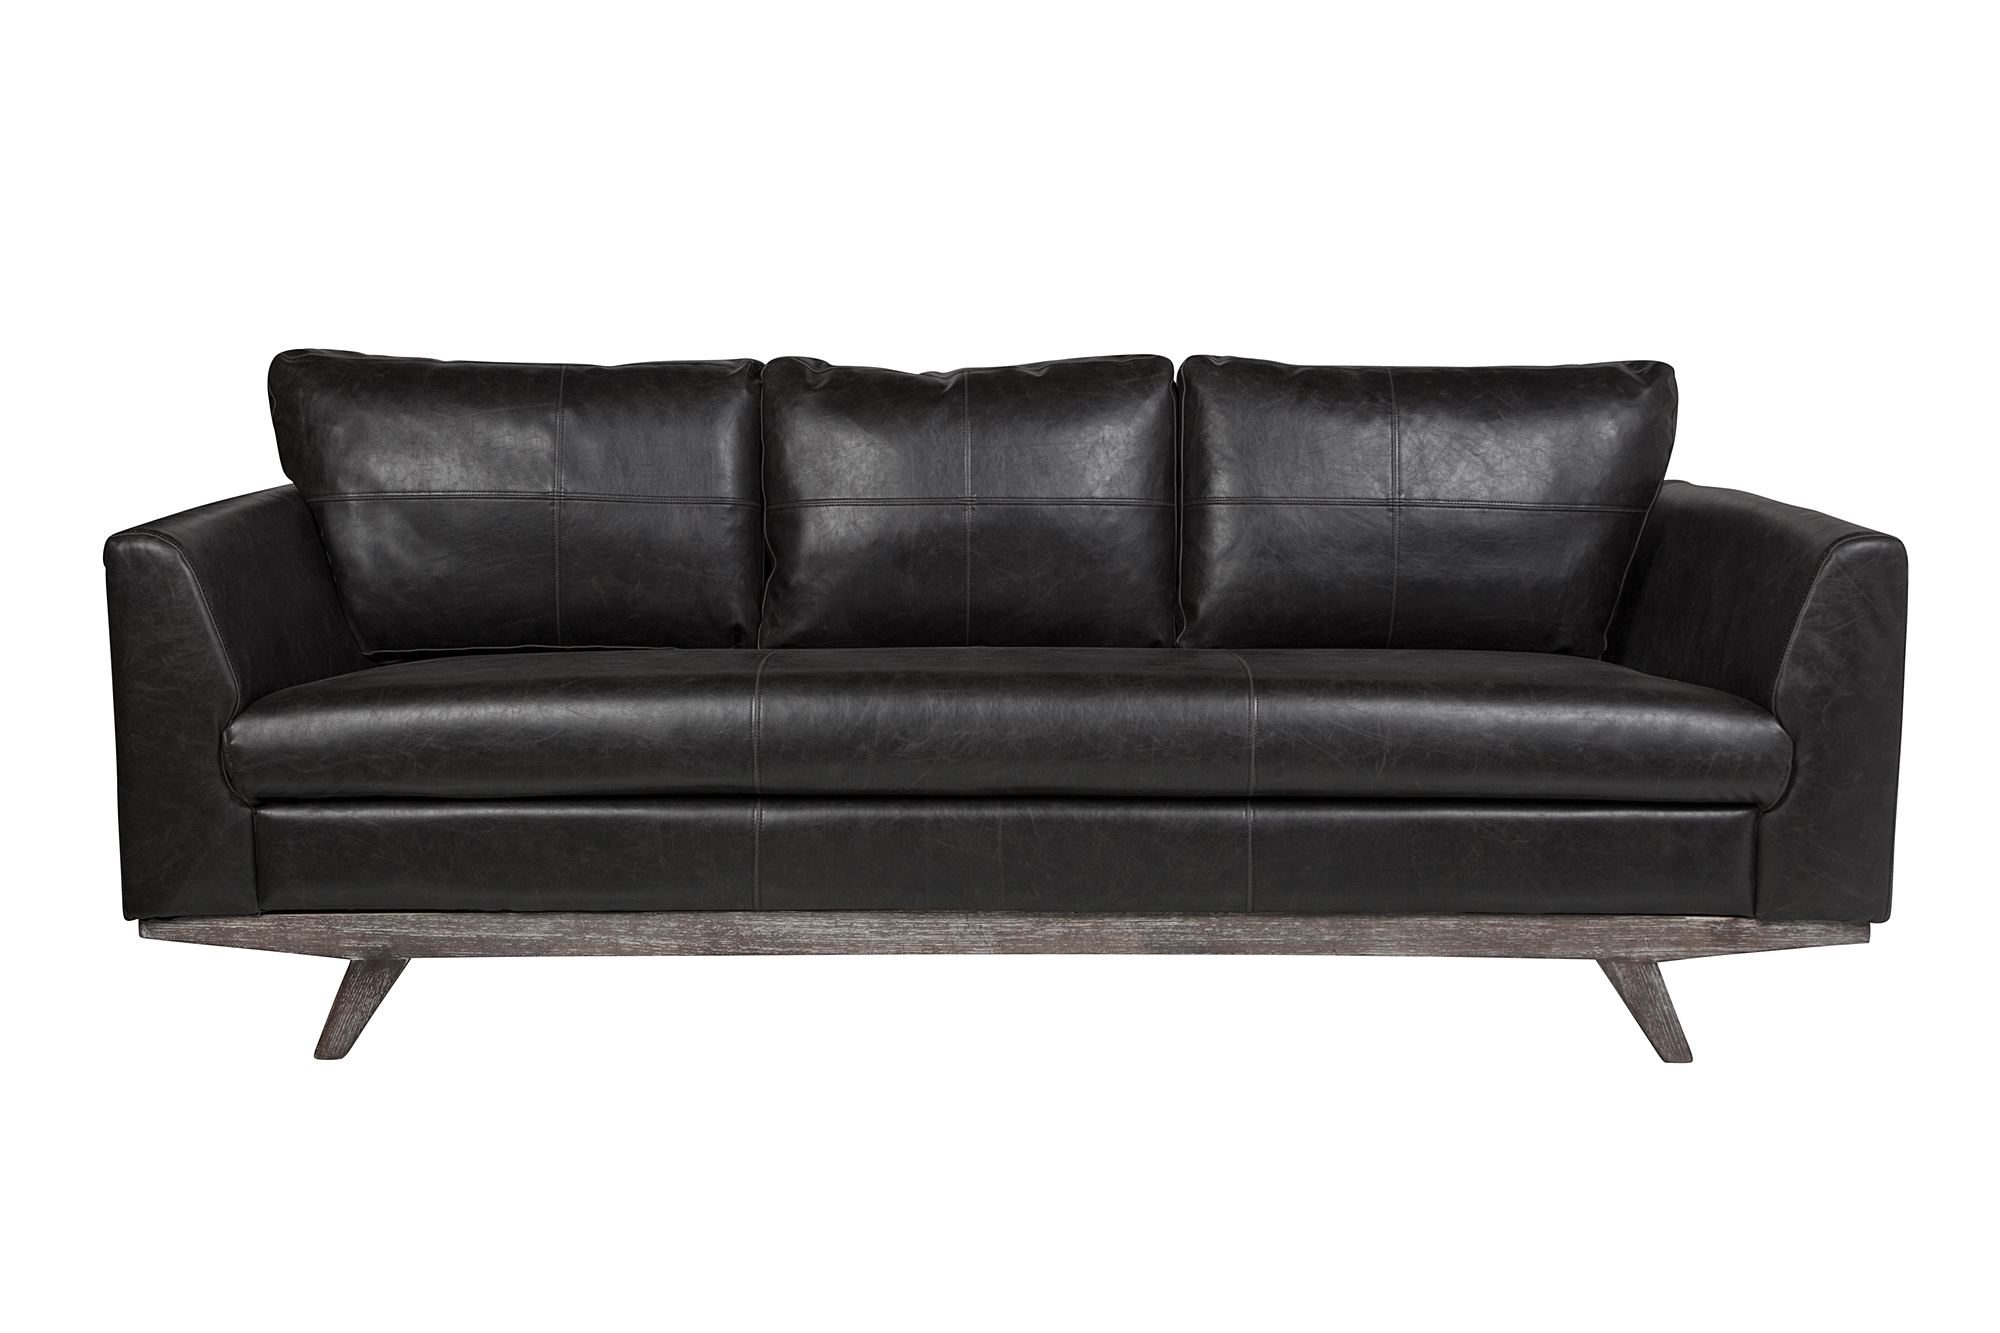 Outline Chaise Longue Sofa by Muuto | Connox